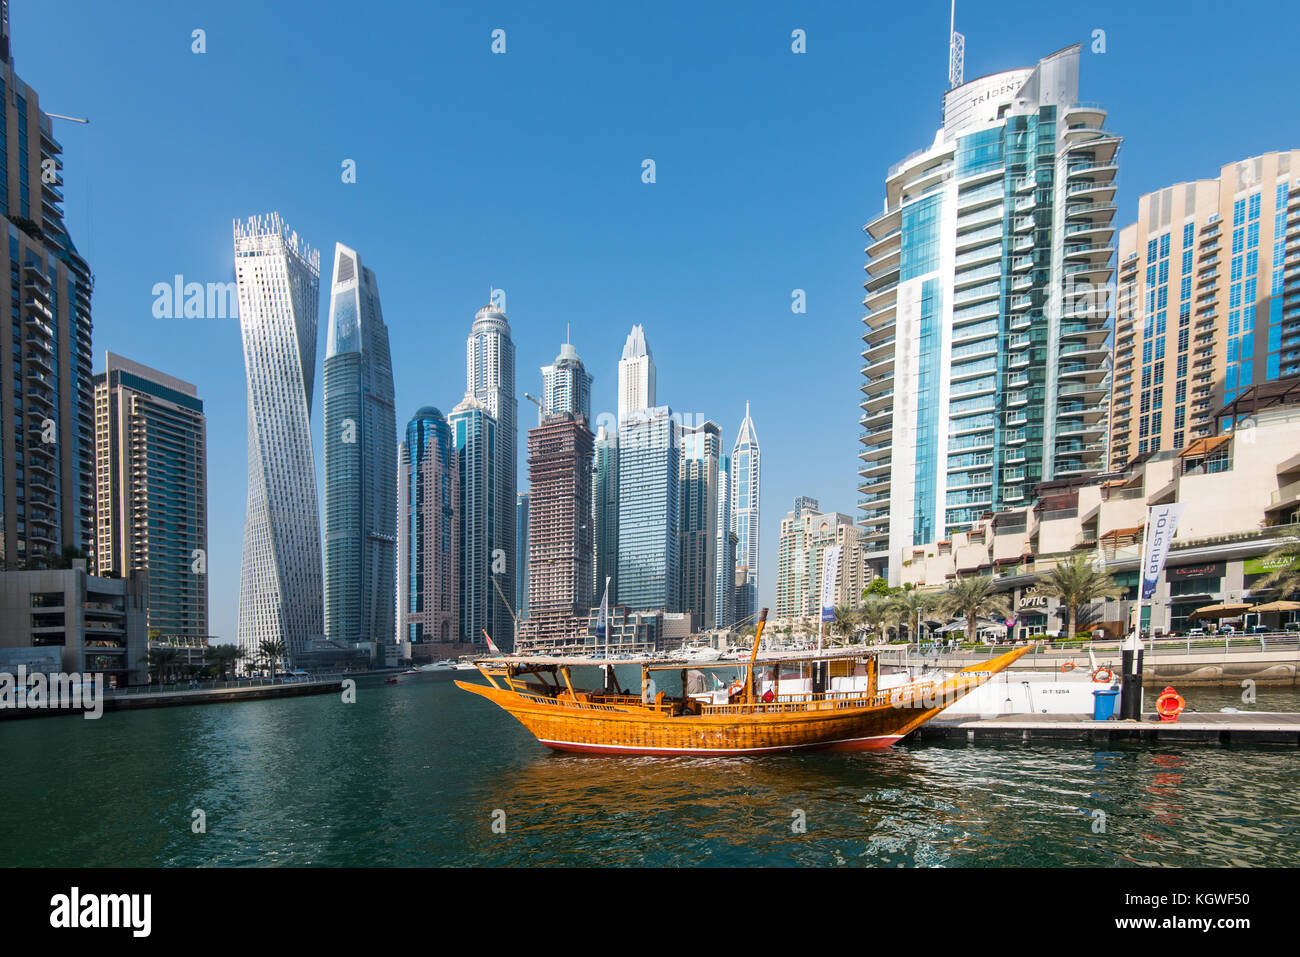 DUBAI, UAE - 31OCT2017: A dhow backed by the Iconic towers of Dubai Marina including (l-r) Cayan, Damac Heights, - Stock Image